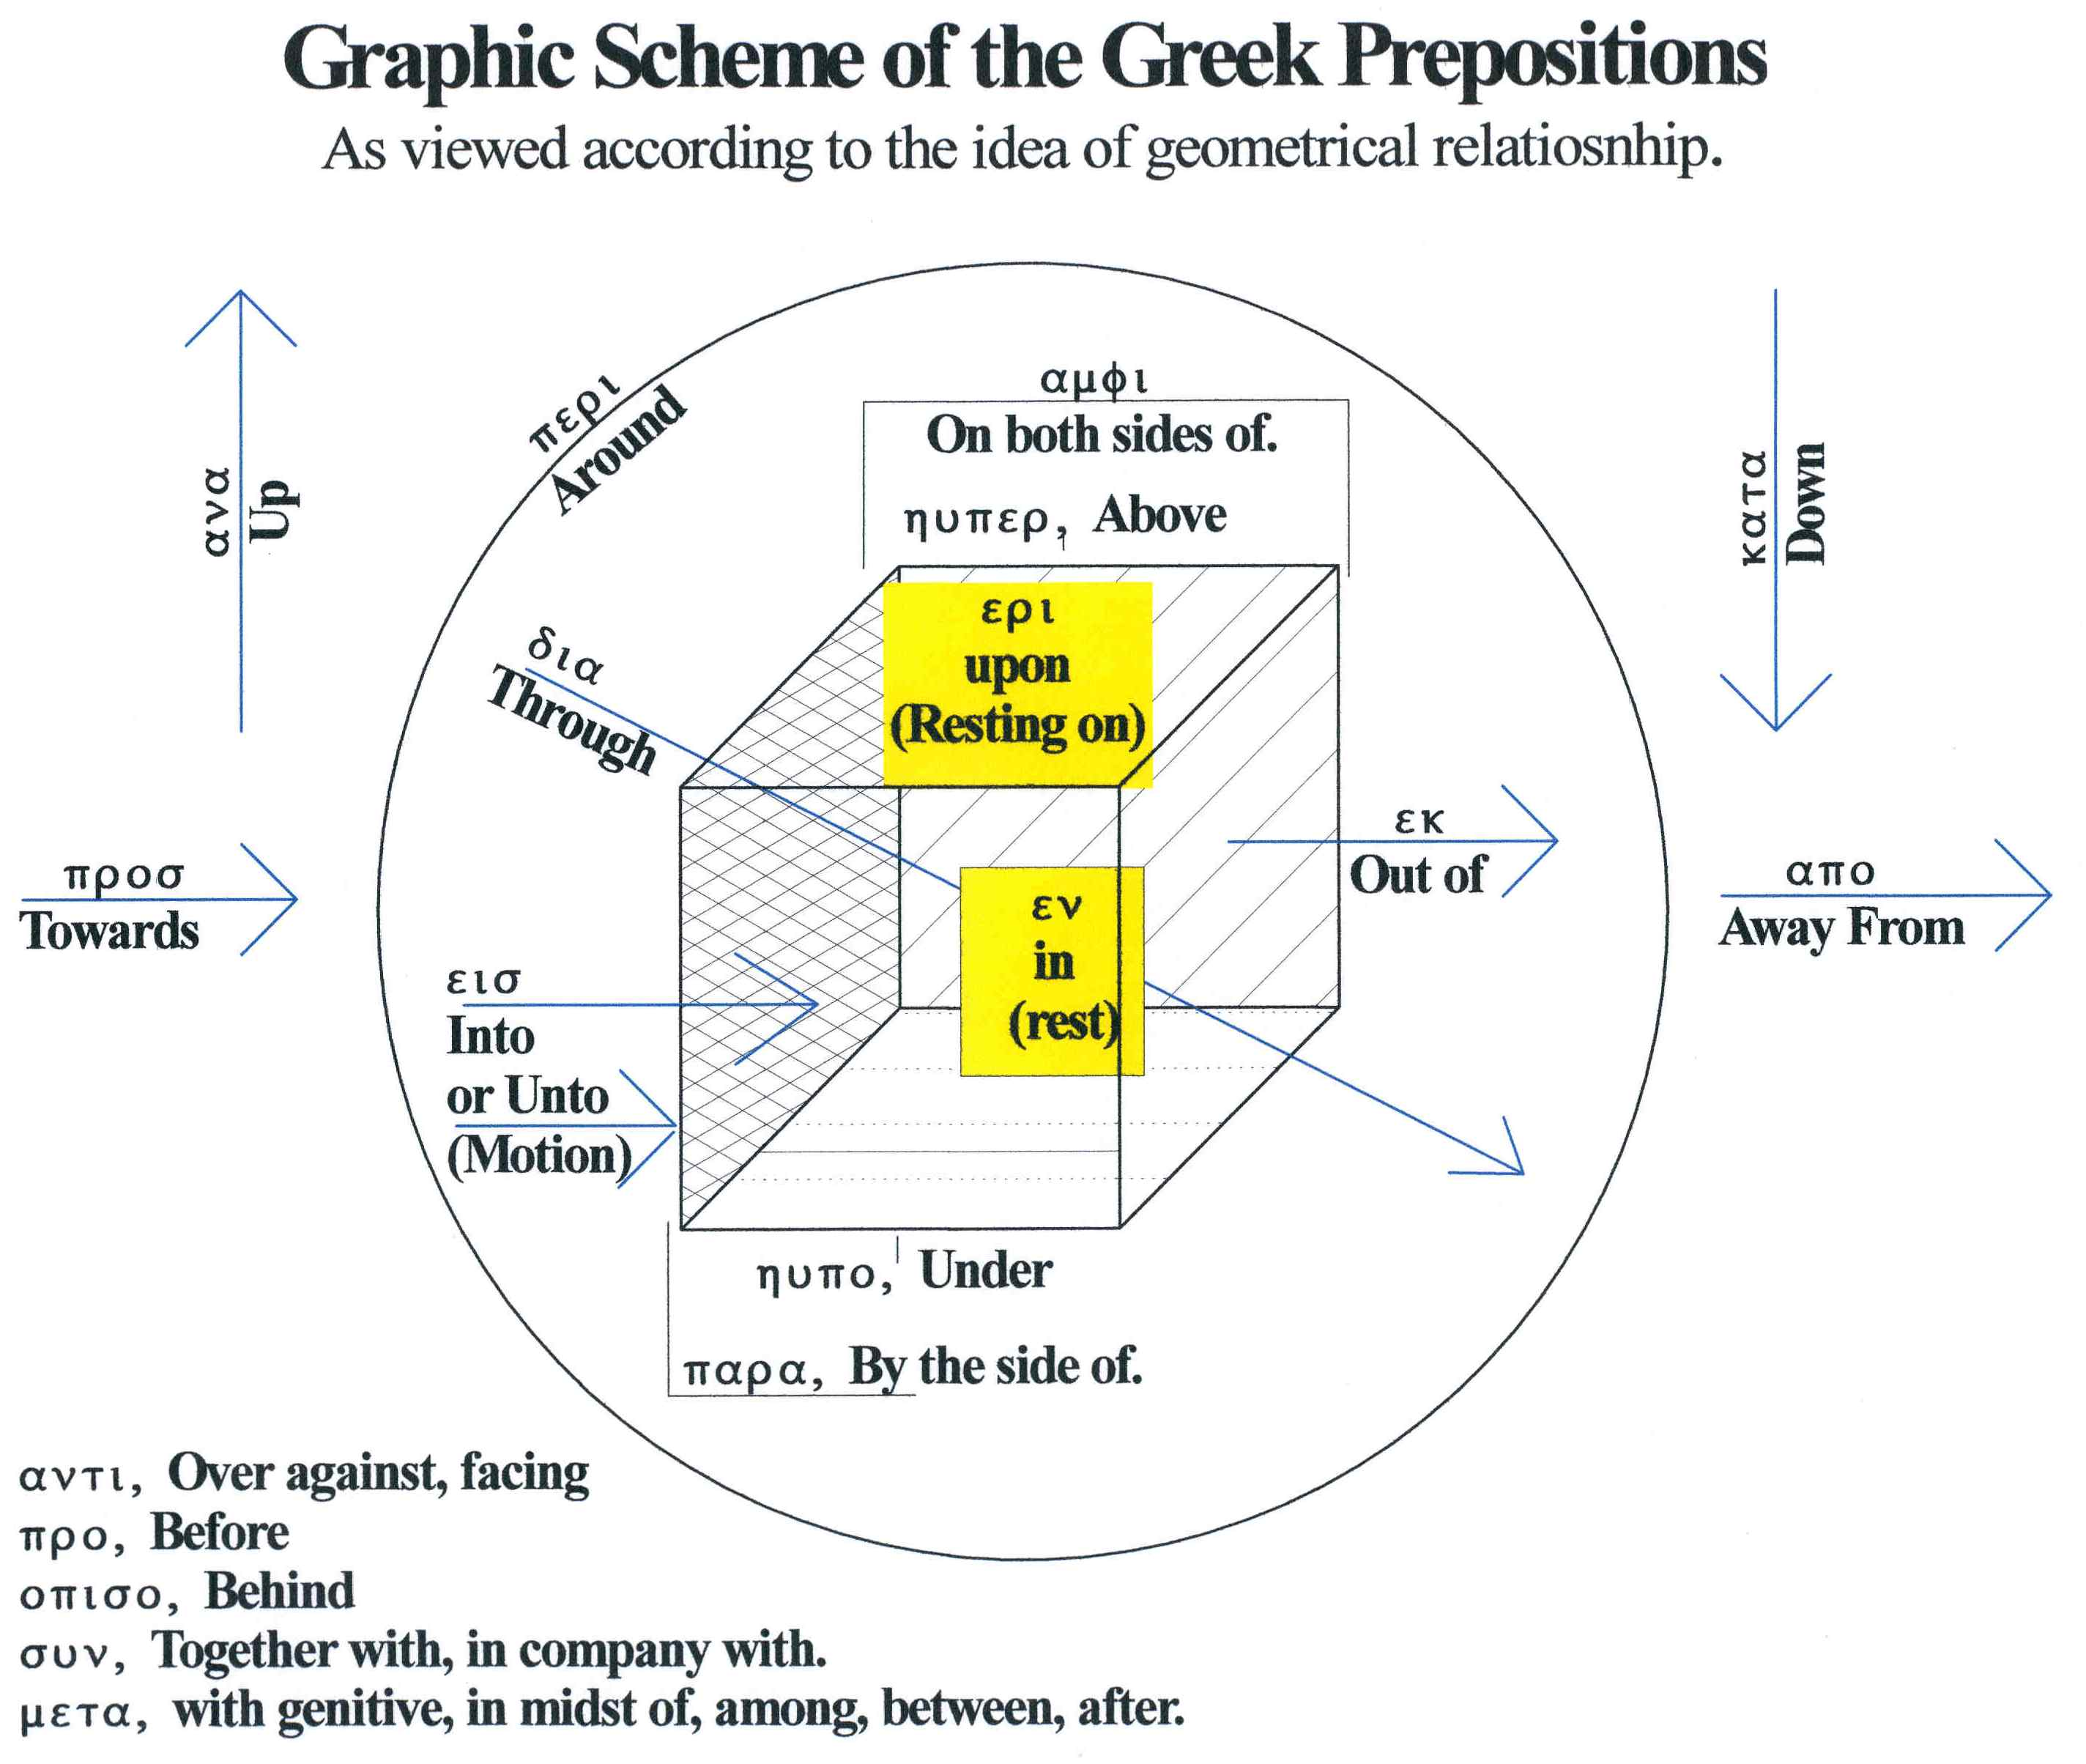 Graphic scheme of the greek prepositions greek grpahic prepositions drawing ccuart Images